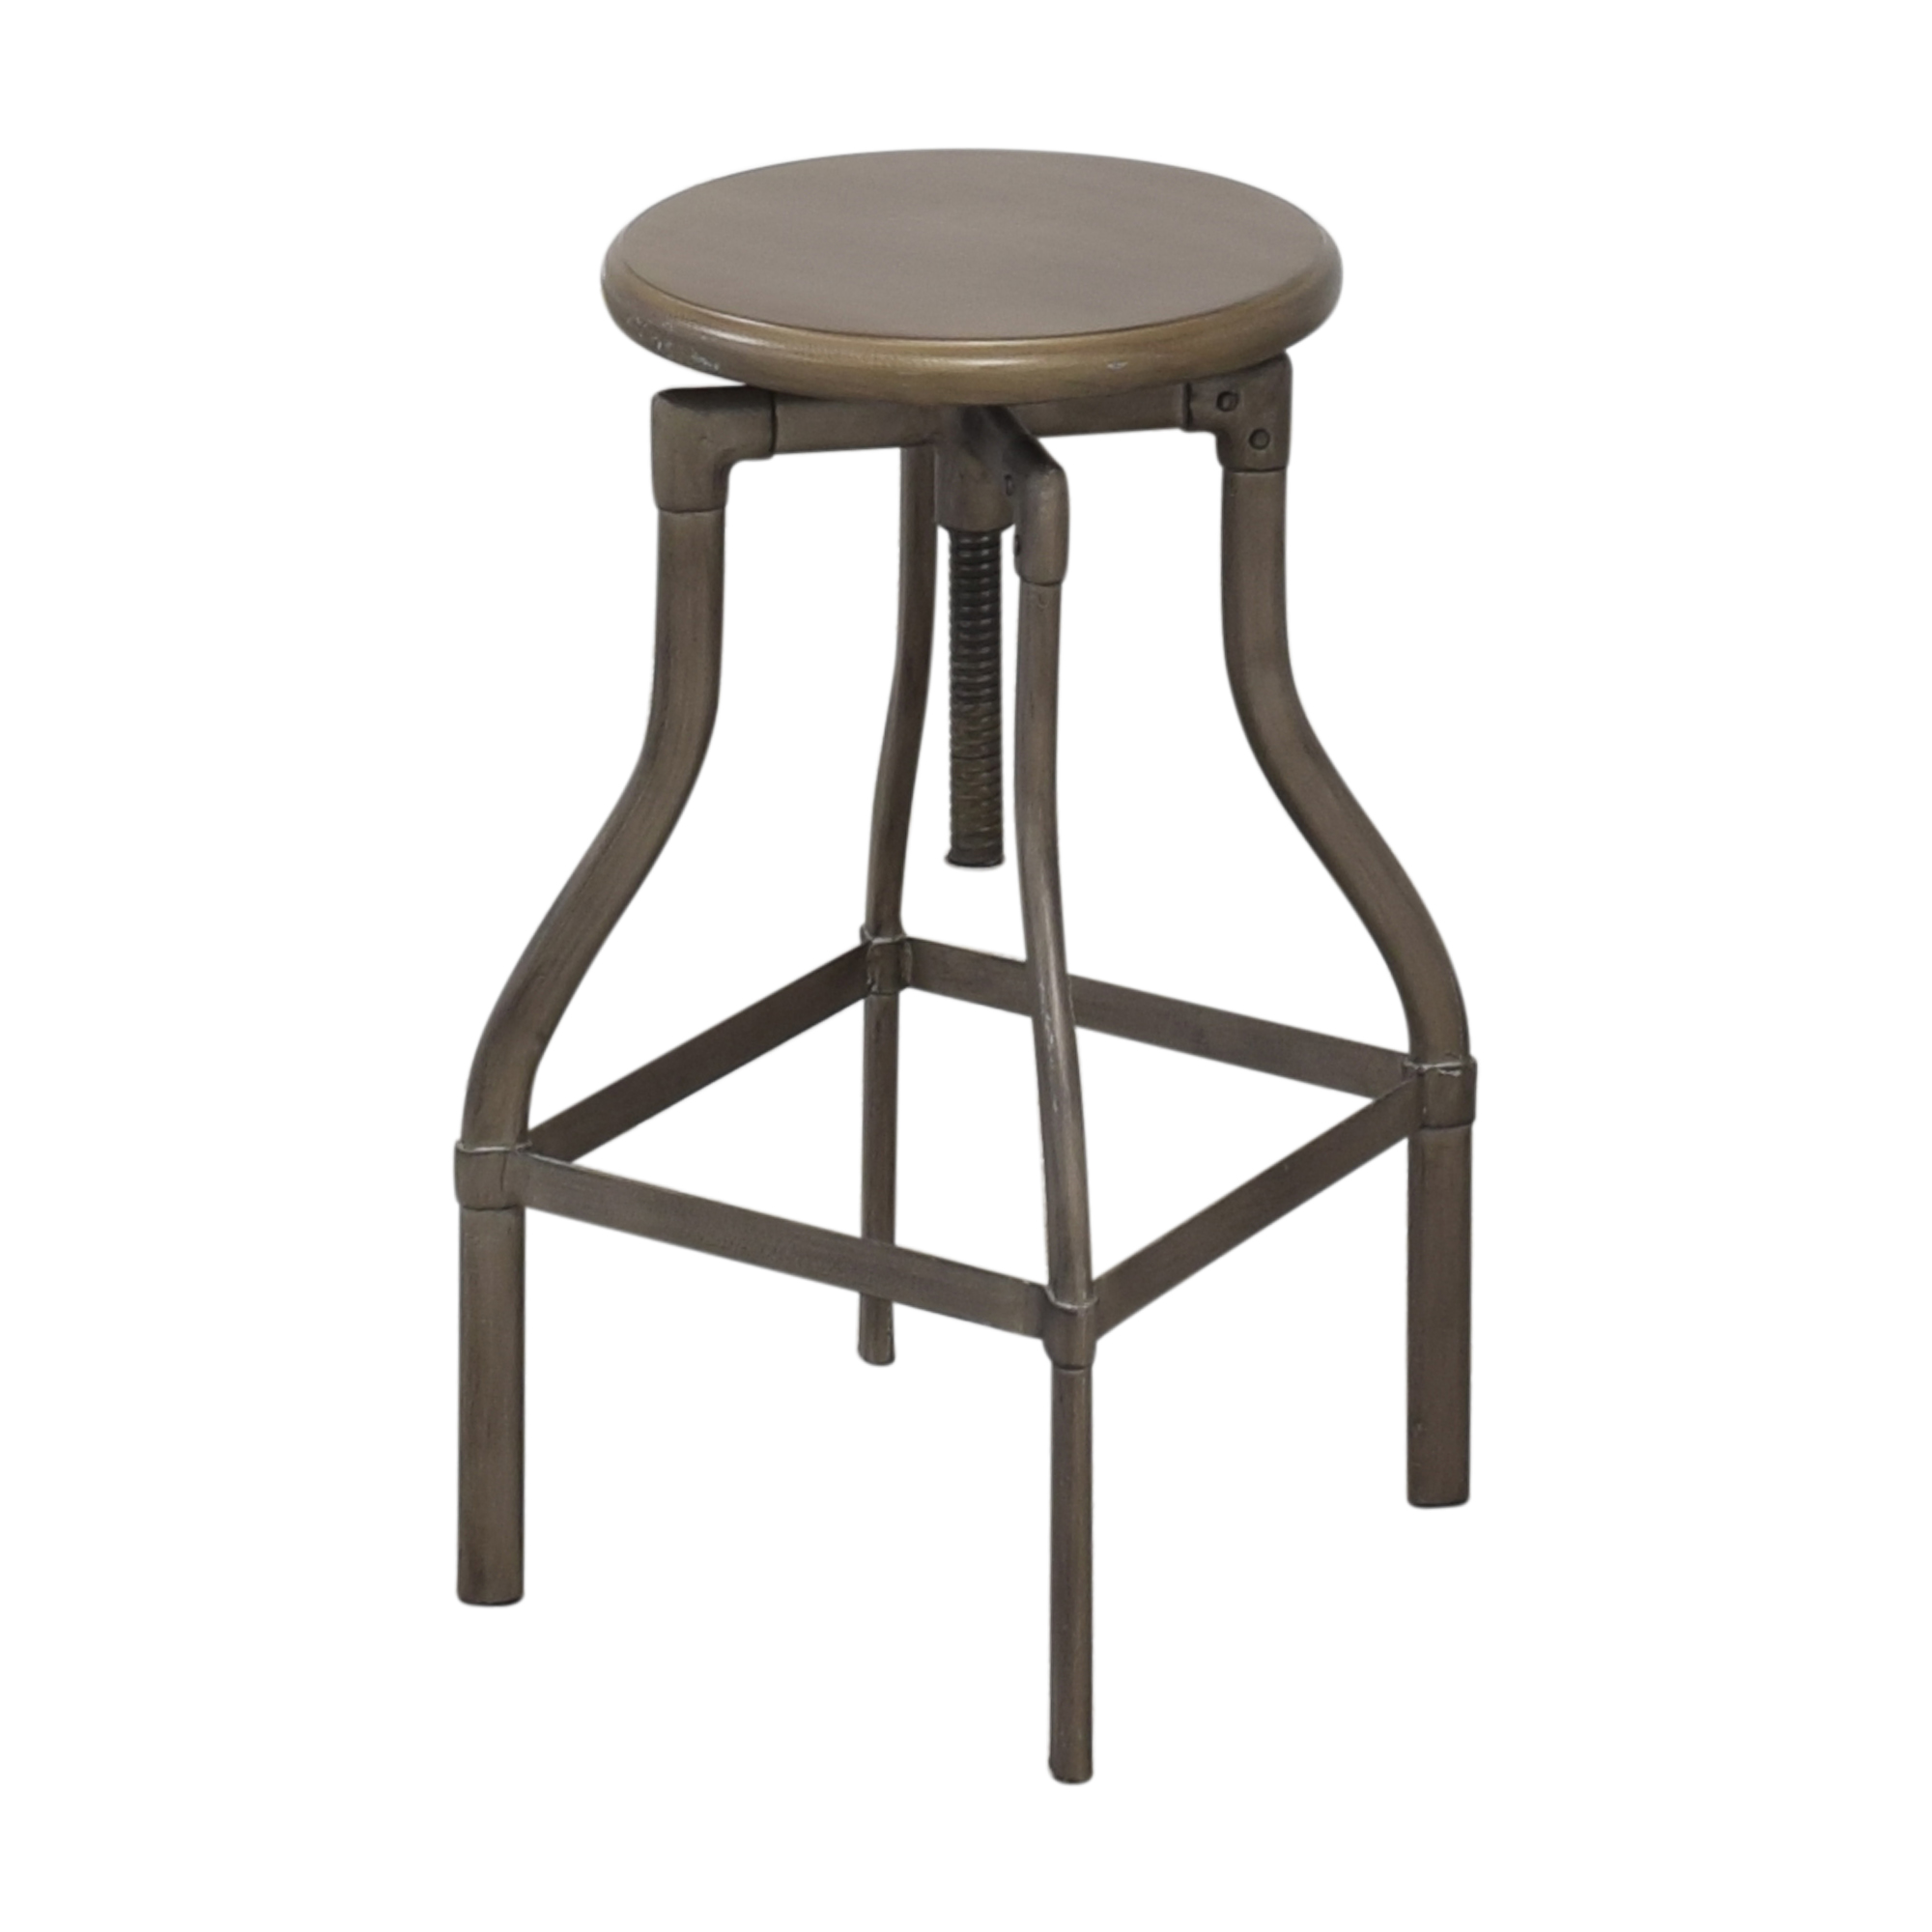 Crate & Barrel Crate & Barrel Turner Adjustable Stools nj